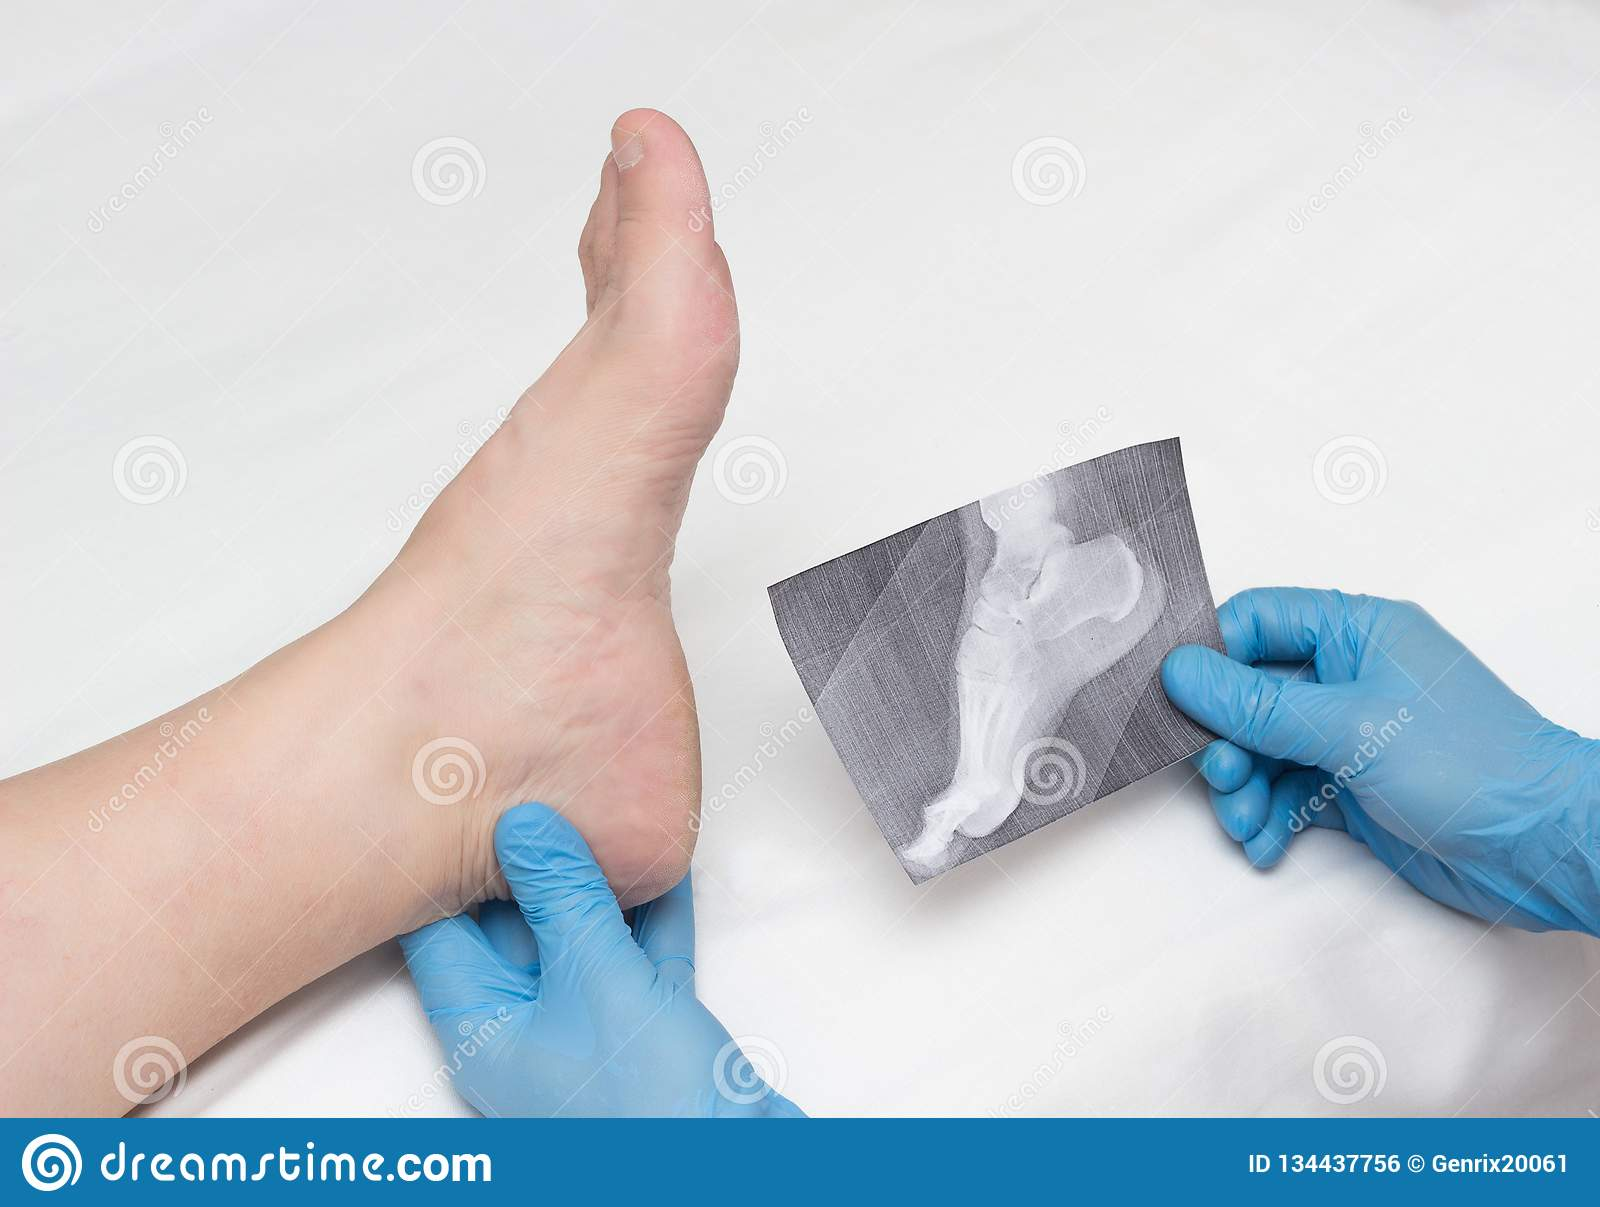 A doctor in medical gloves holds an x-ray of the foot and examines a sore leg with a heel spur on a woman, close-up